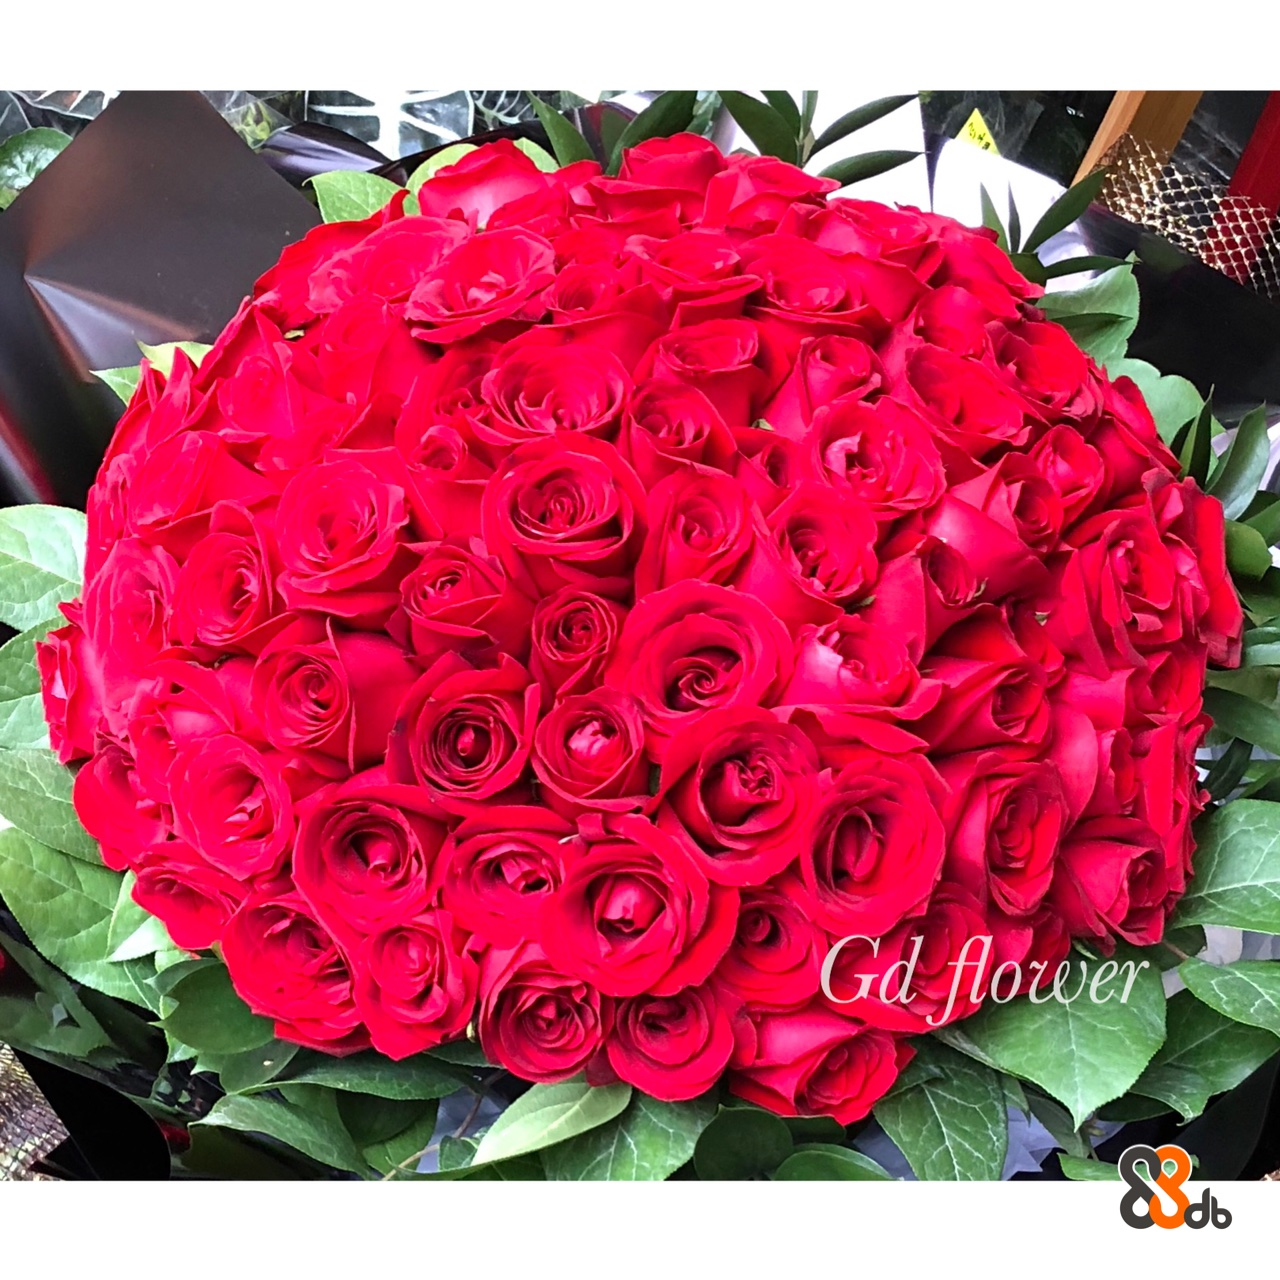 Gd lower db  flower,rose,garden roses,flower bouquet,rose family